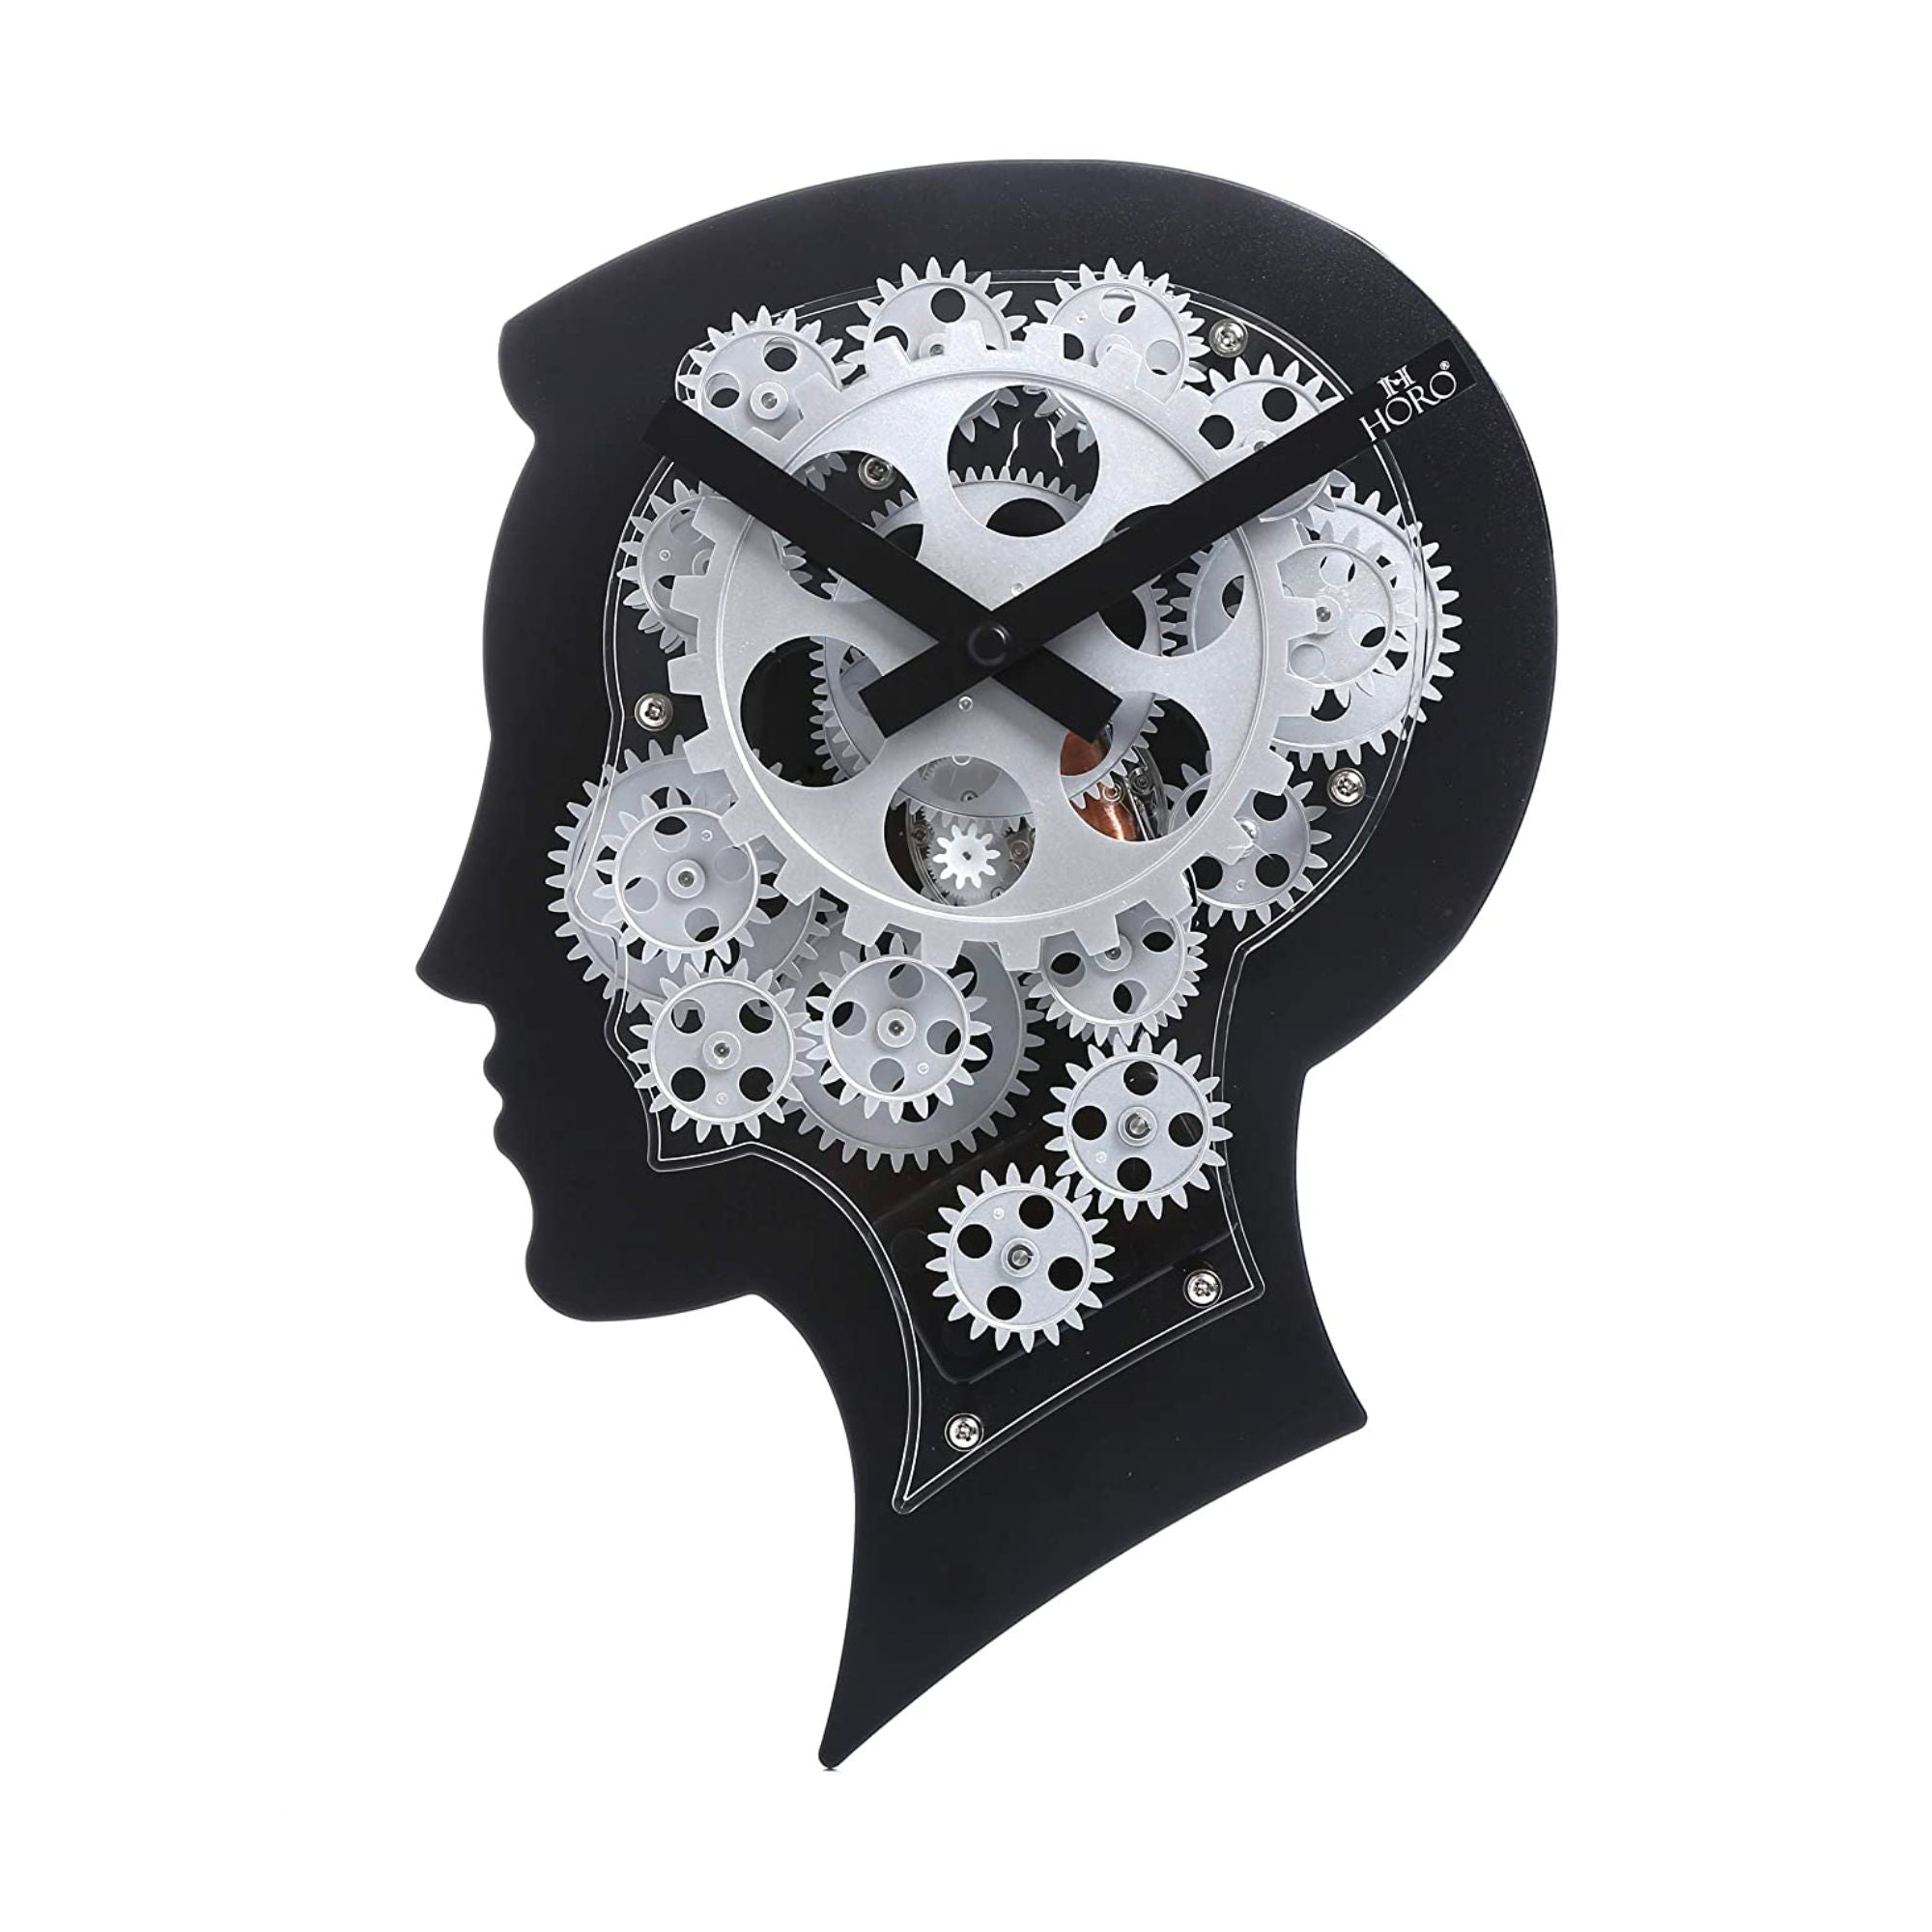 Best Brain Gear Wall Clock